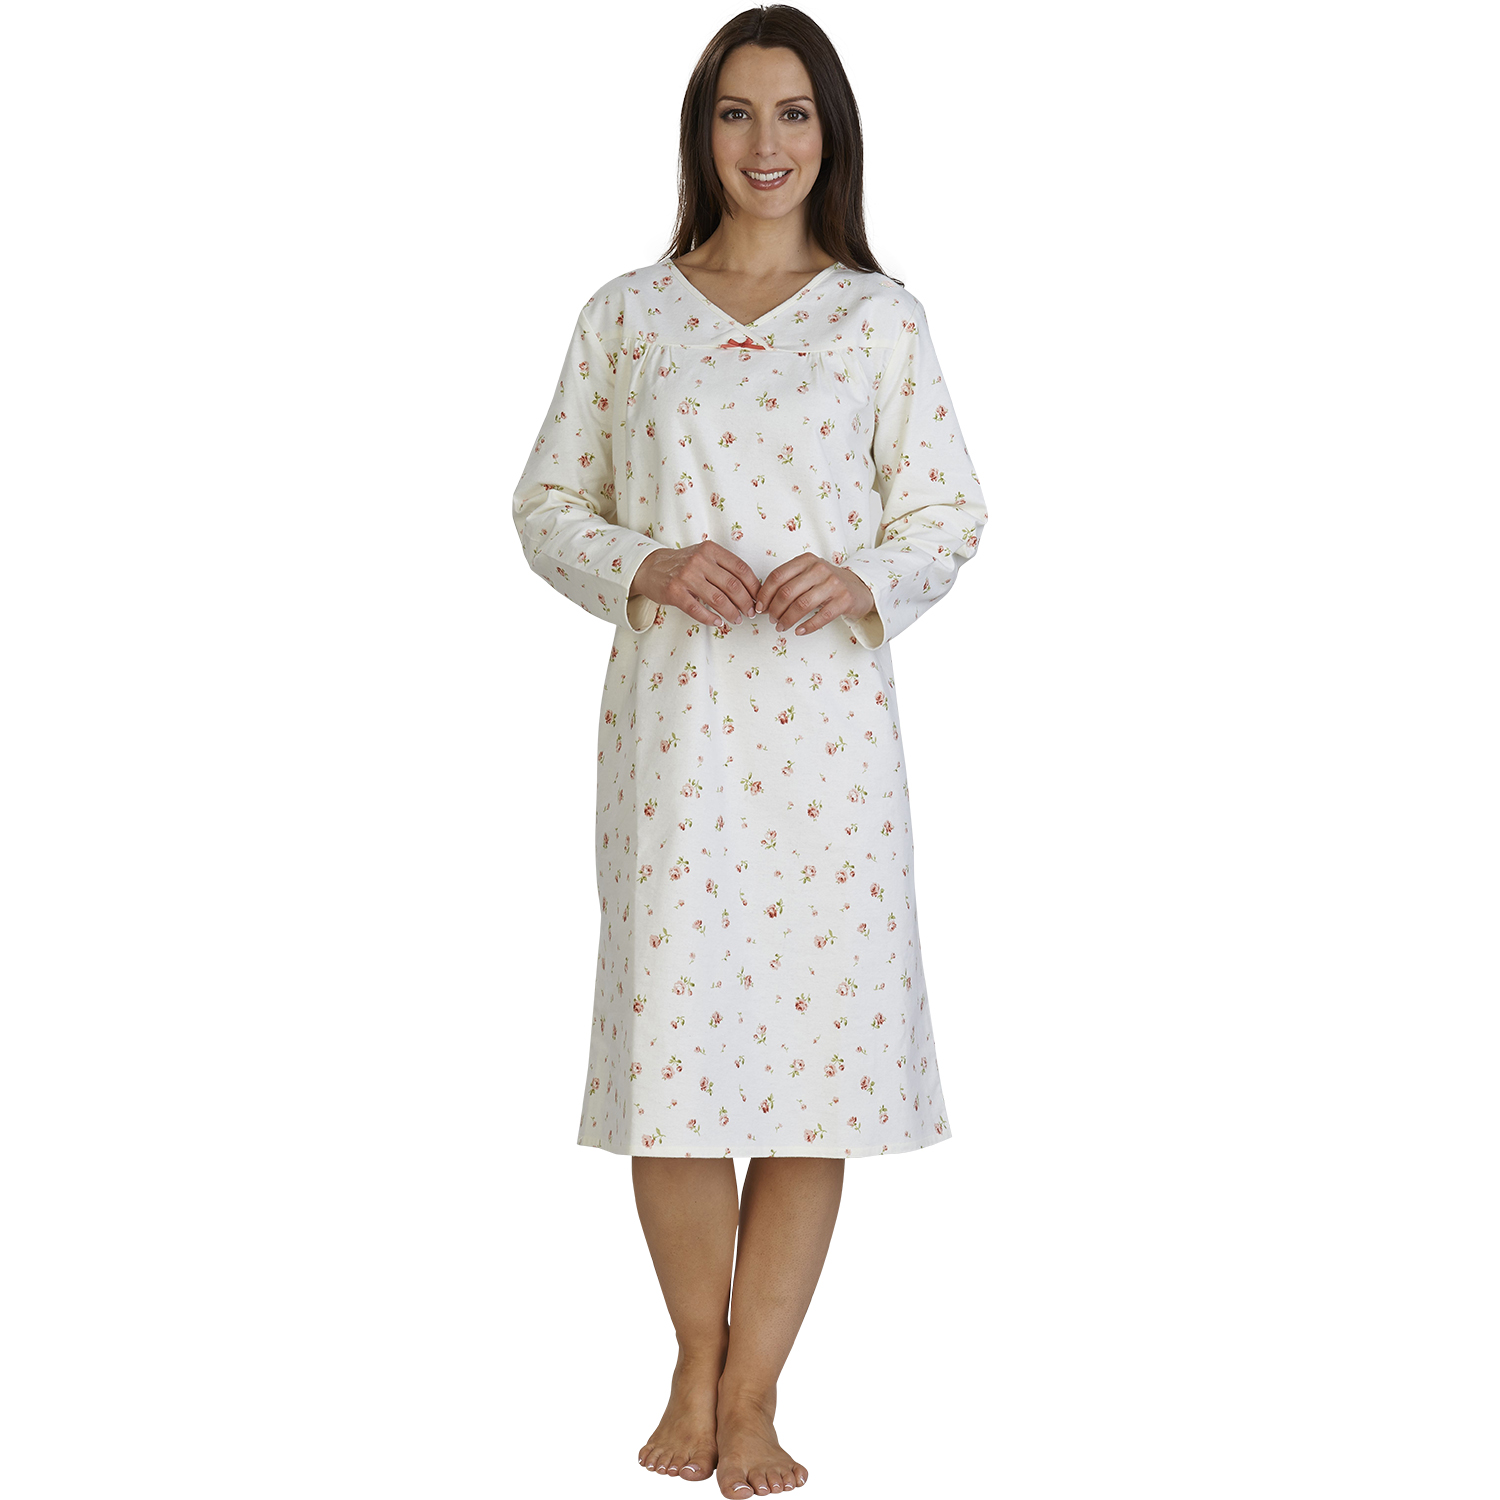 Slenderella Womens Floral Brushed Cotton Nightdress Ladies